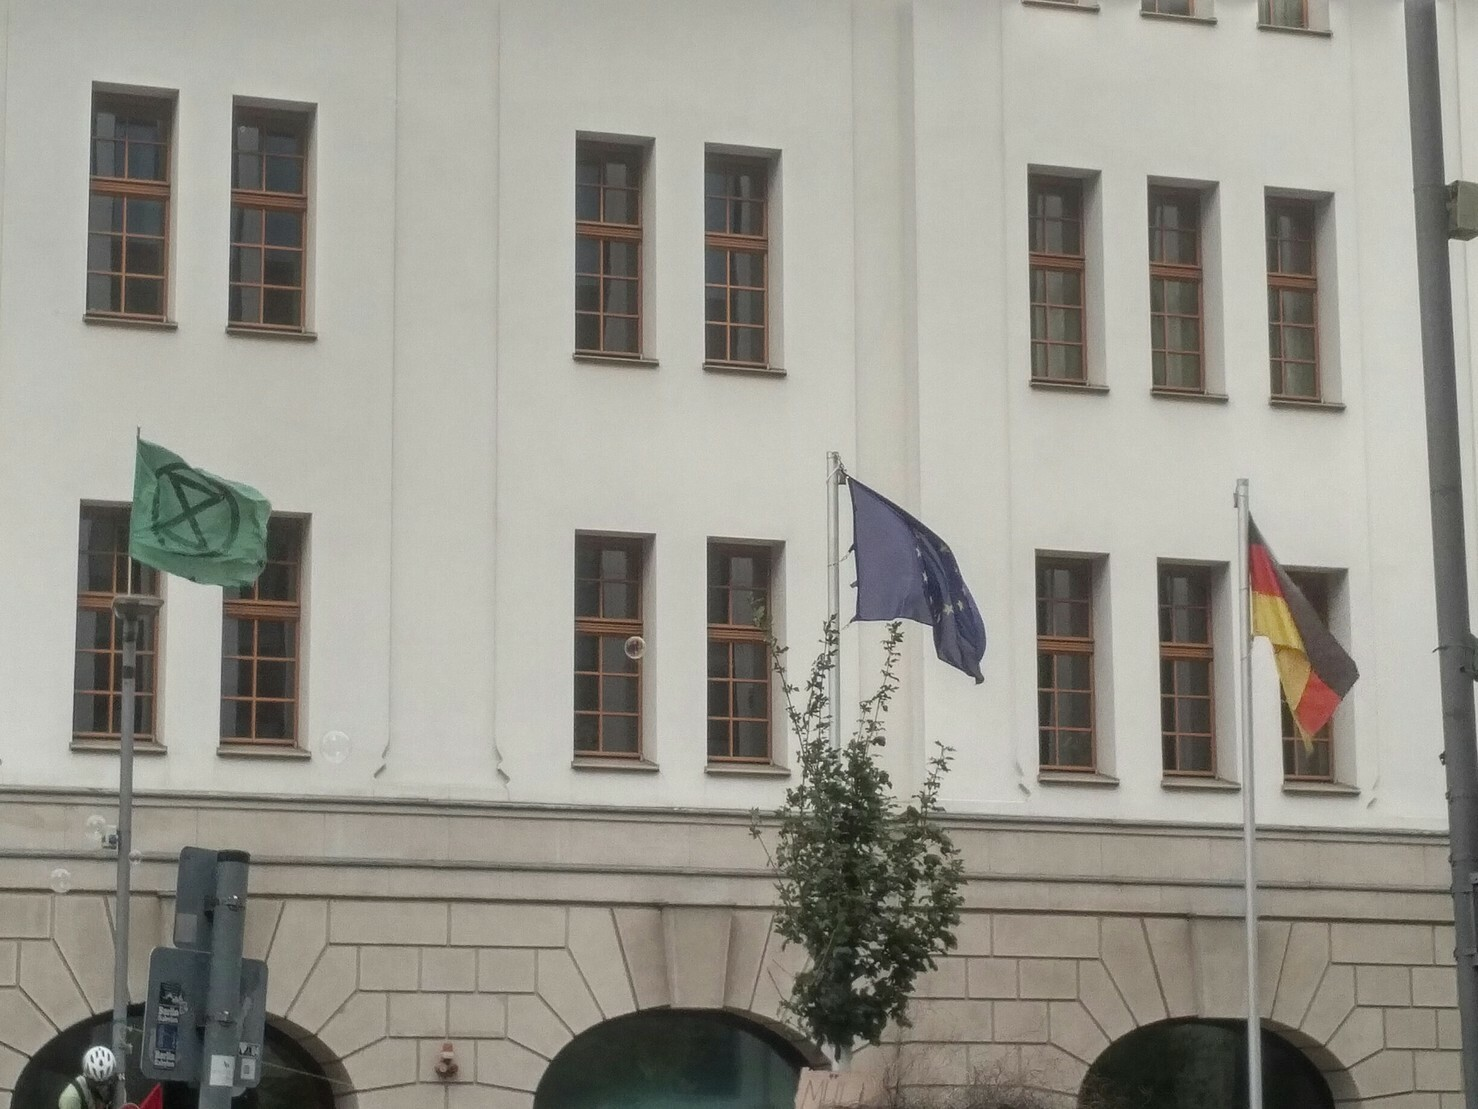 In front of German Ministry for Environment extinction rebellion flag has been raised next to european union and german